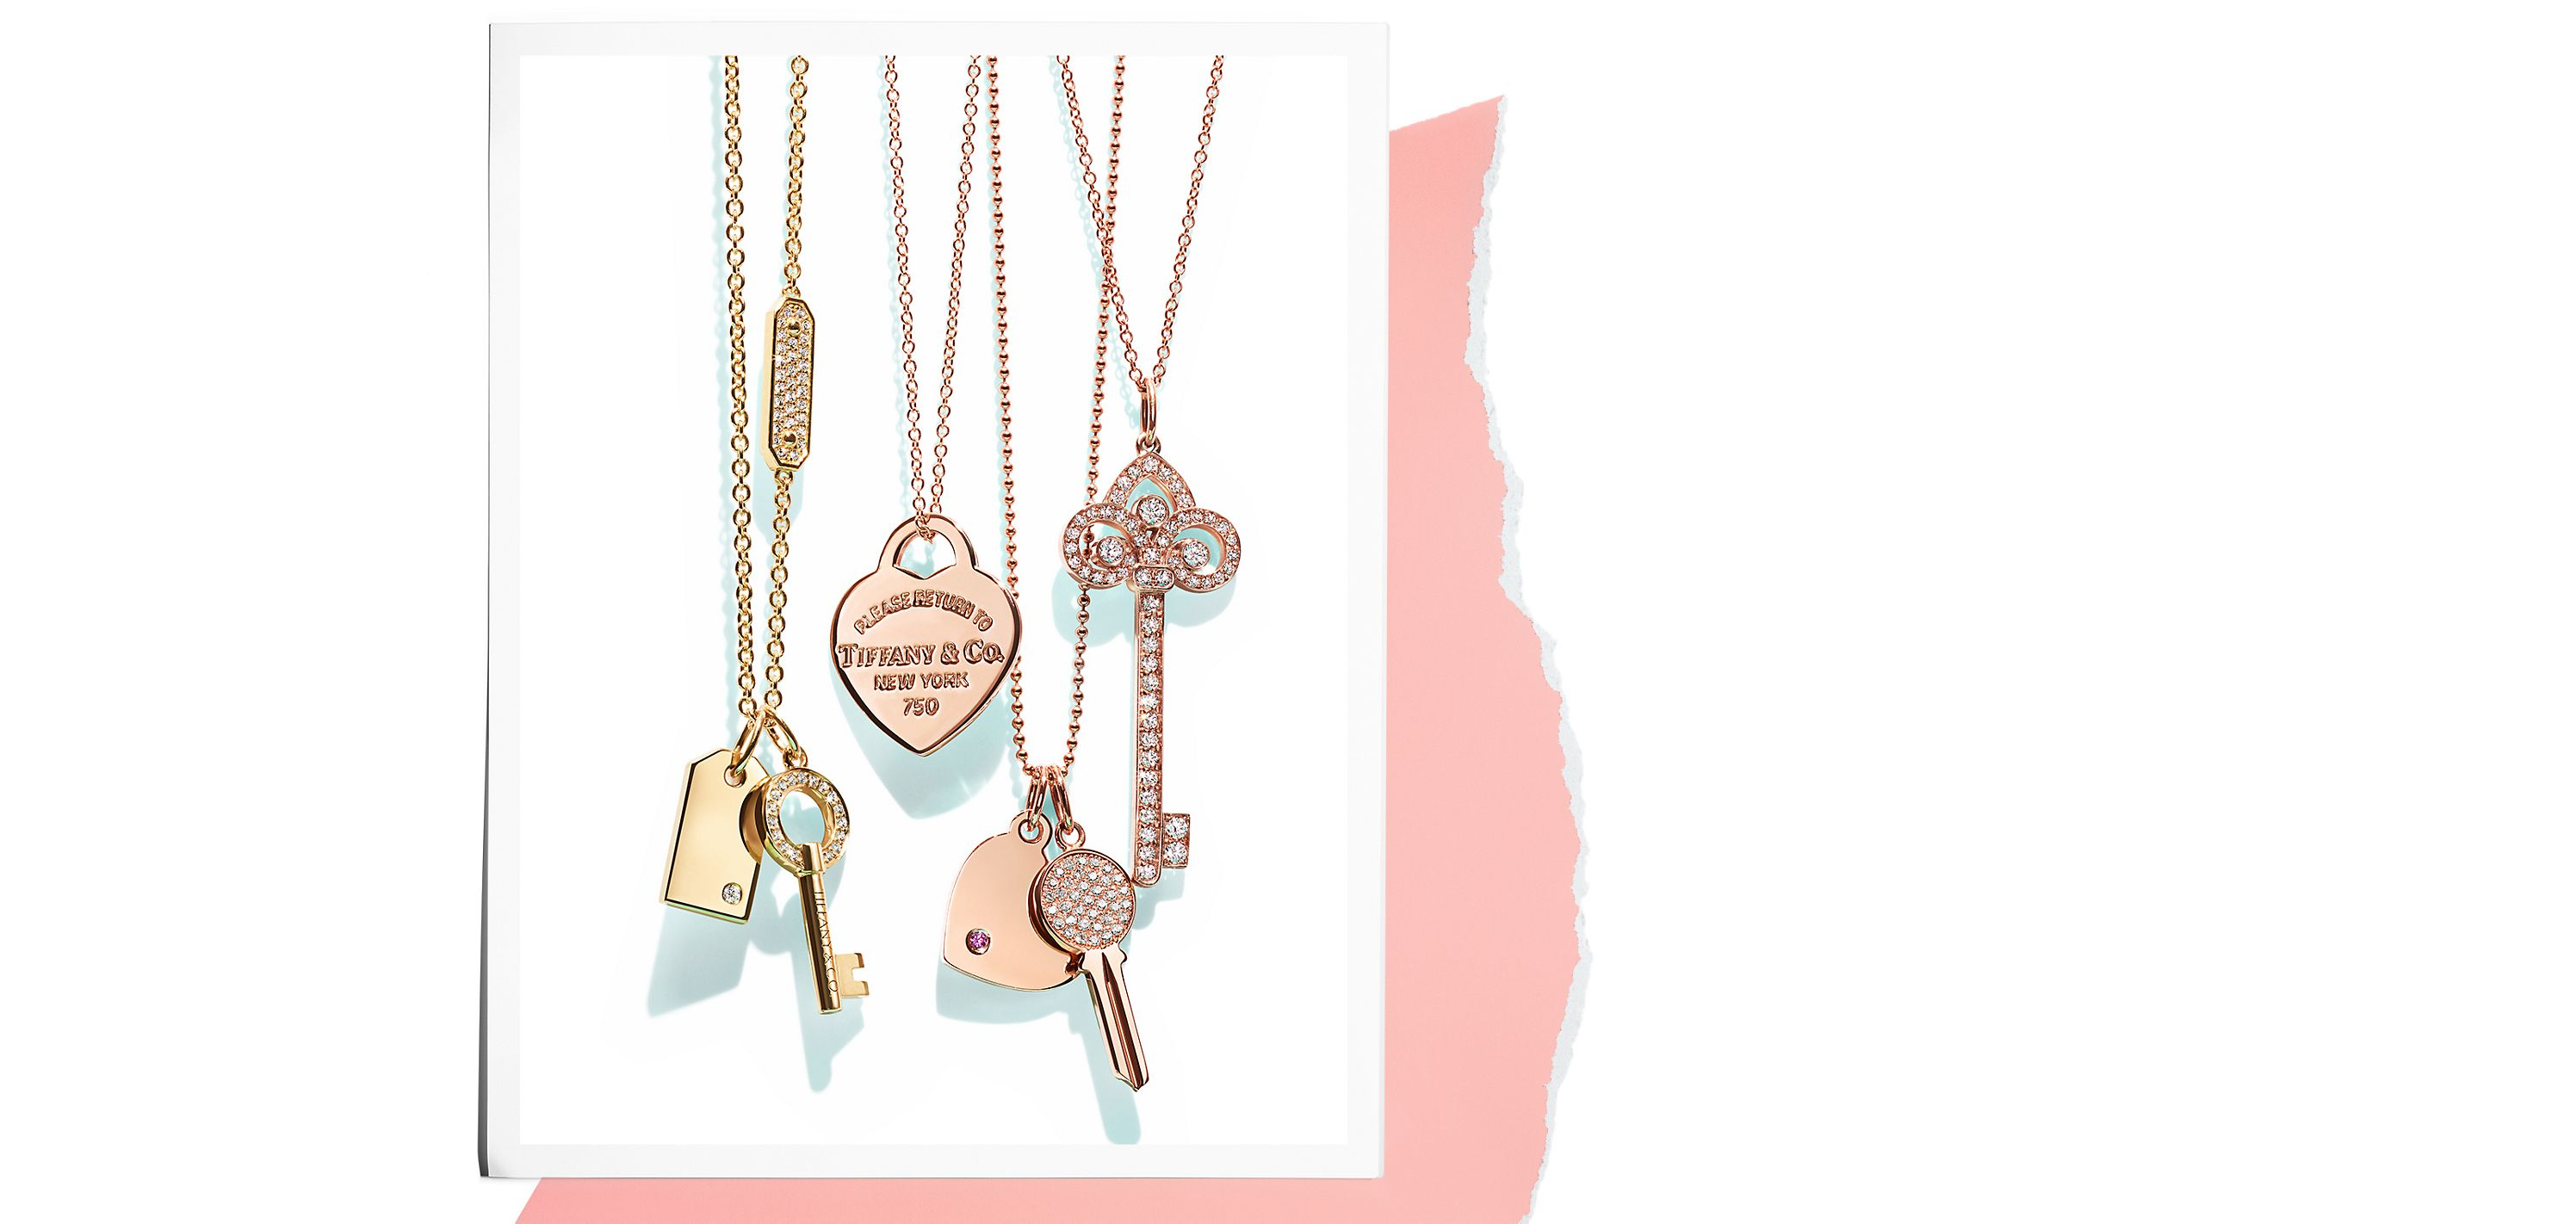 Shop Tiffany & Co. Tiffany Keys & Charms